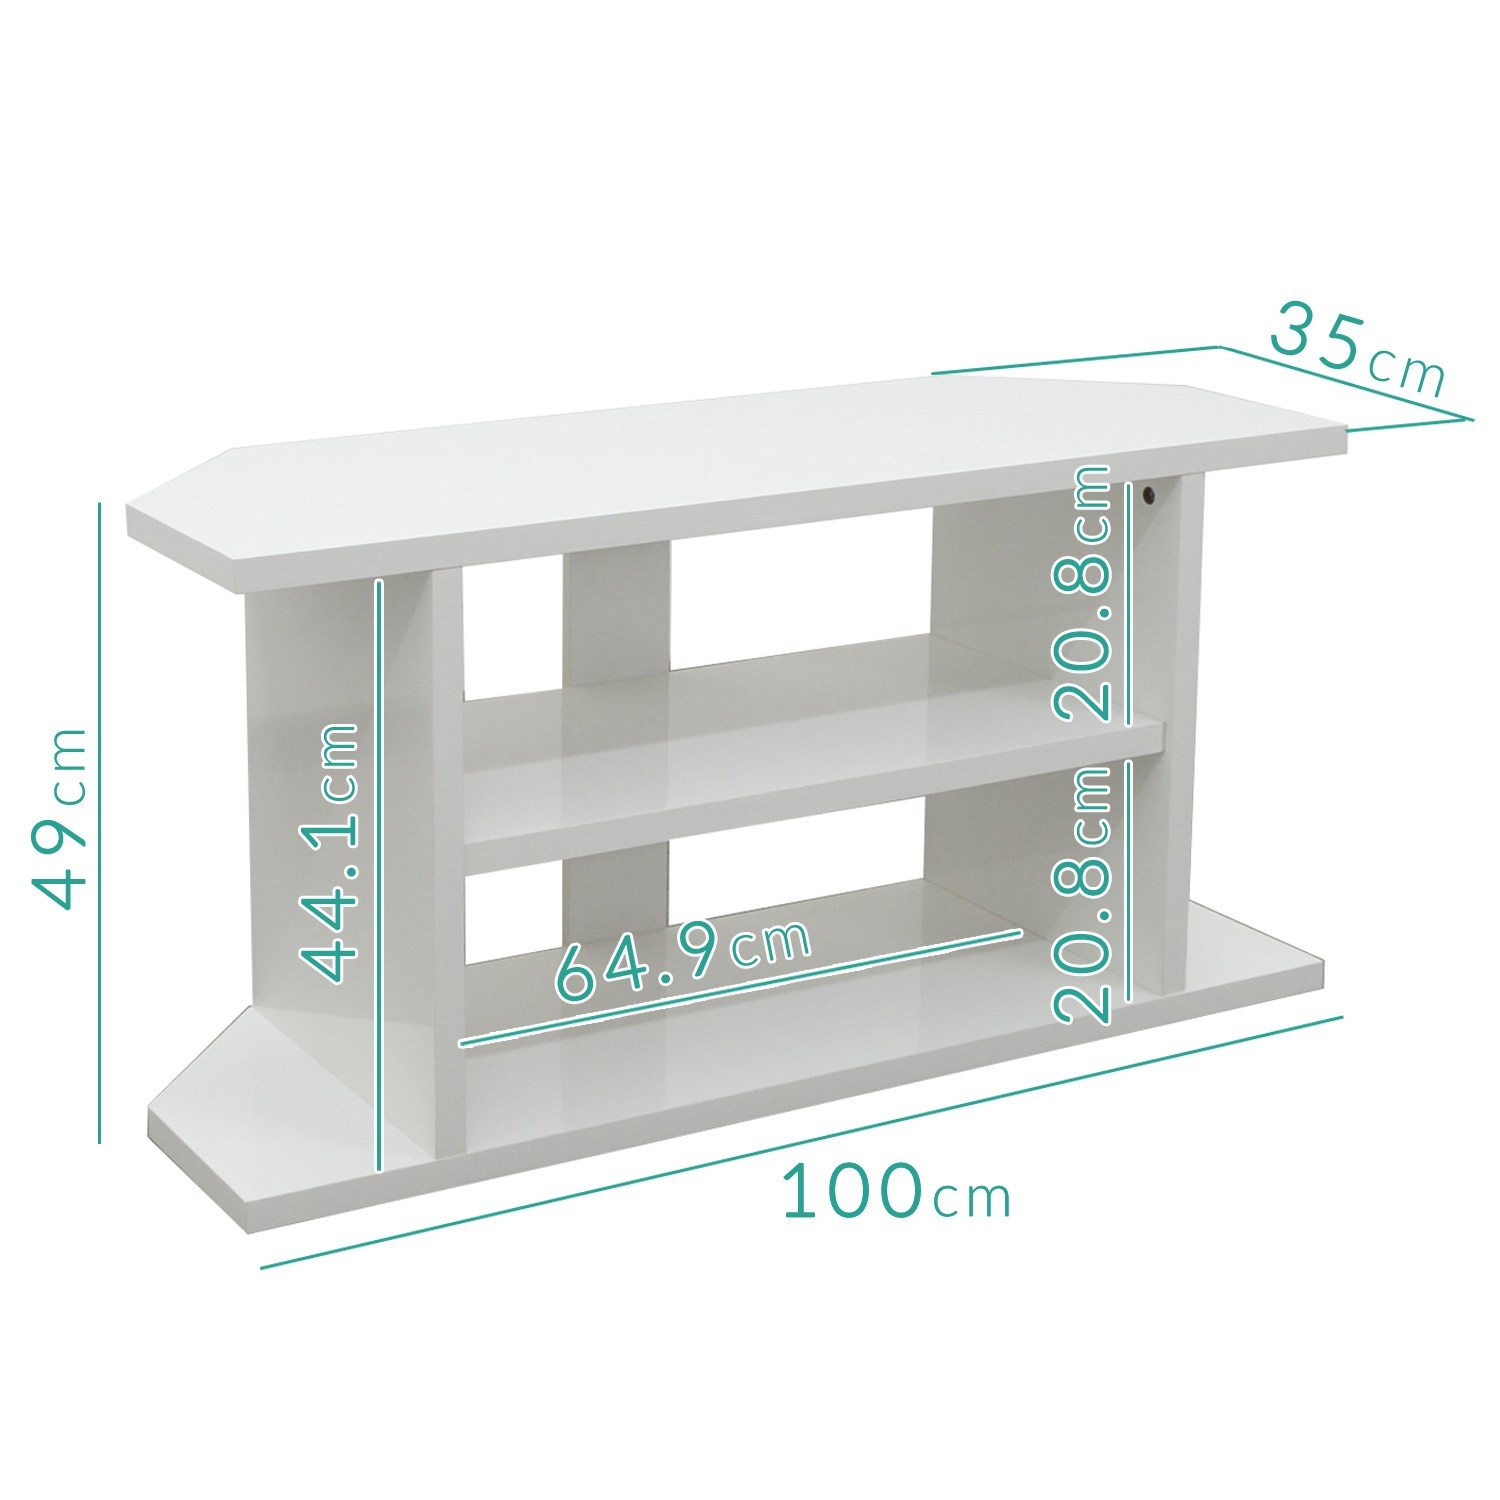 on sale 3fe7f ad85c Artemis Small White High Gloss Corner TV Stand - TV's up to 40